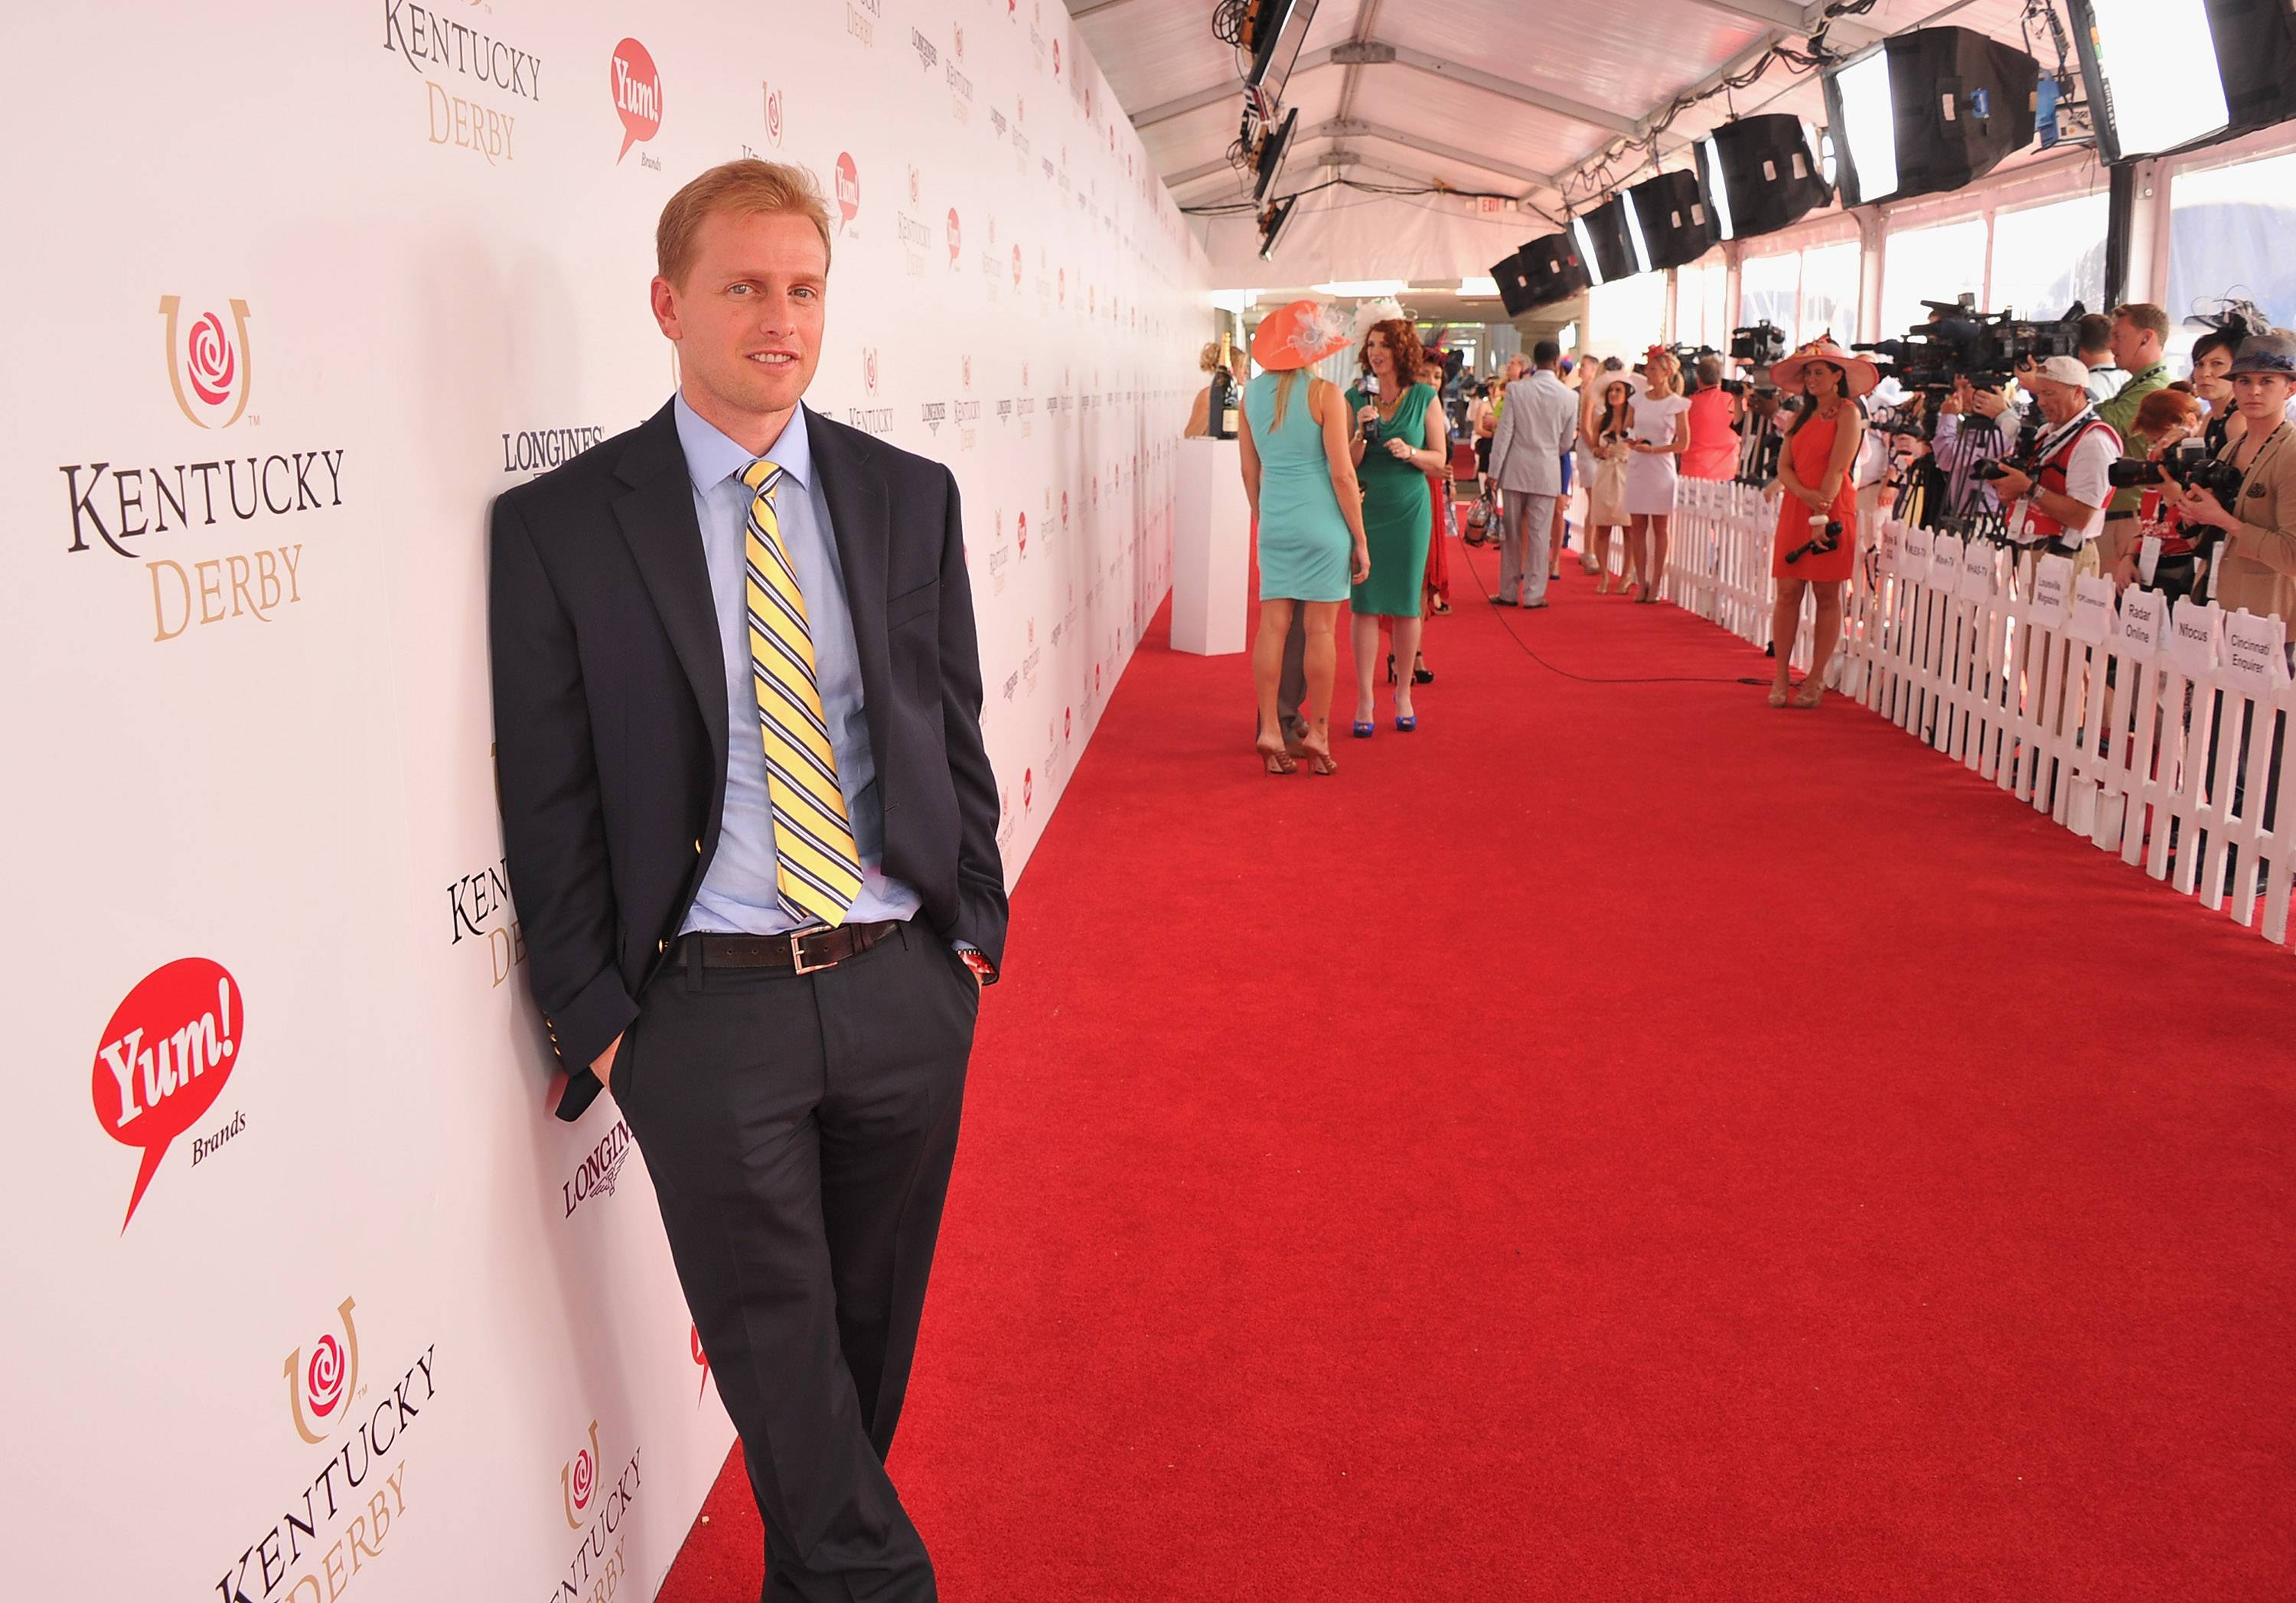 Scott Wakeman, Brand Director, GREY GOOSE Vodka at the 138th Running of the Kentucky Derby.